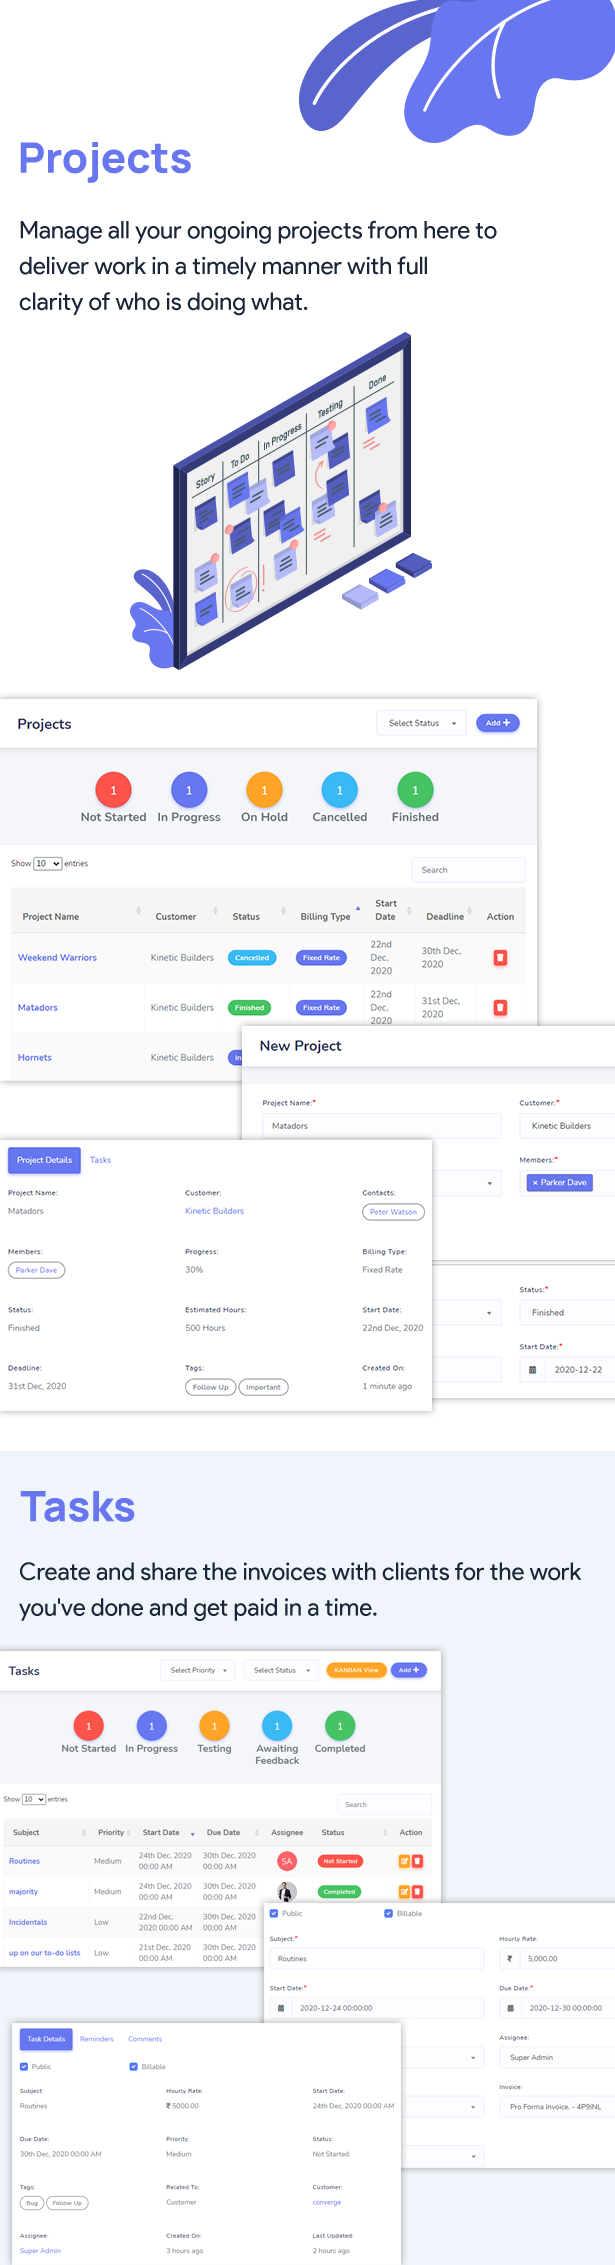 InfyCRM Features 2